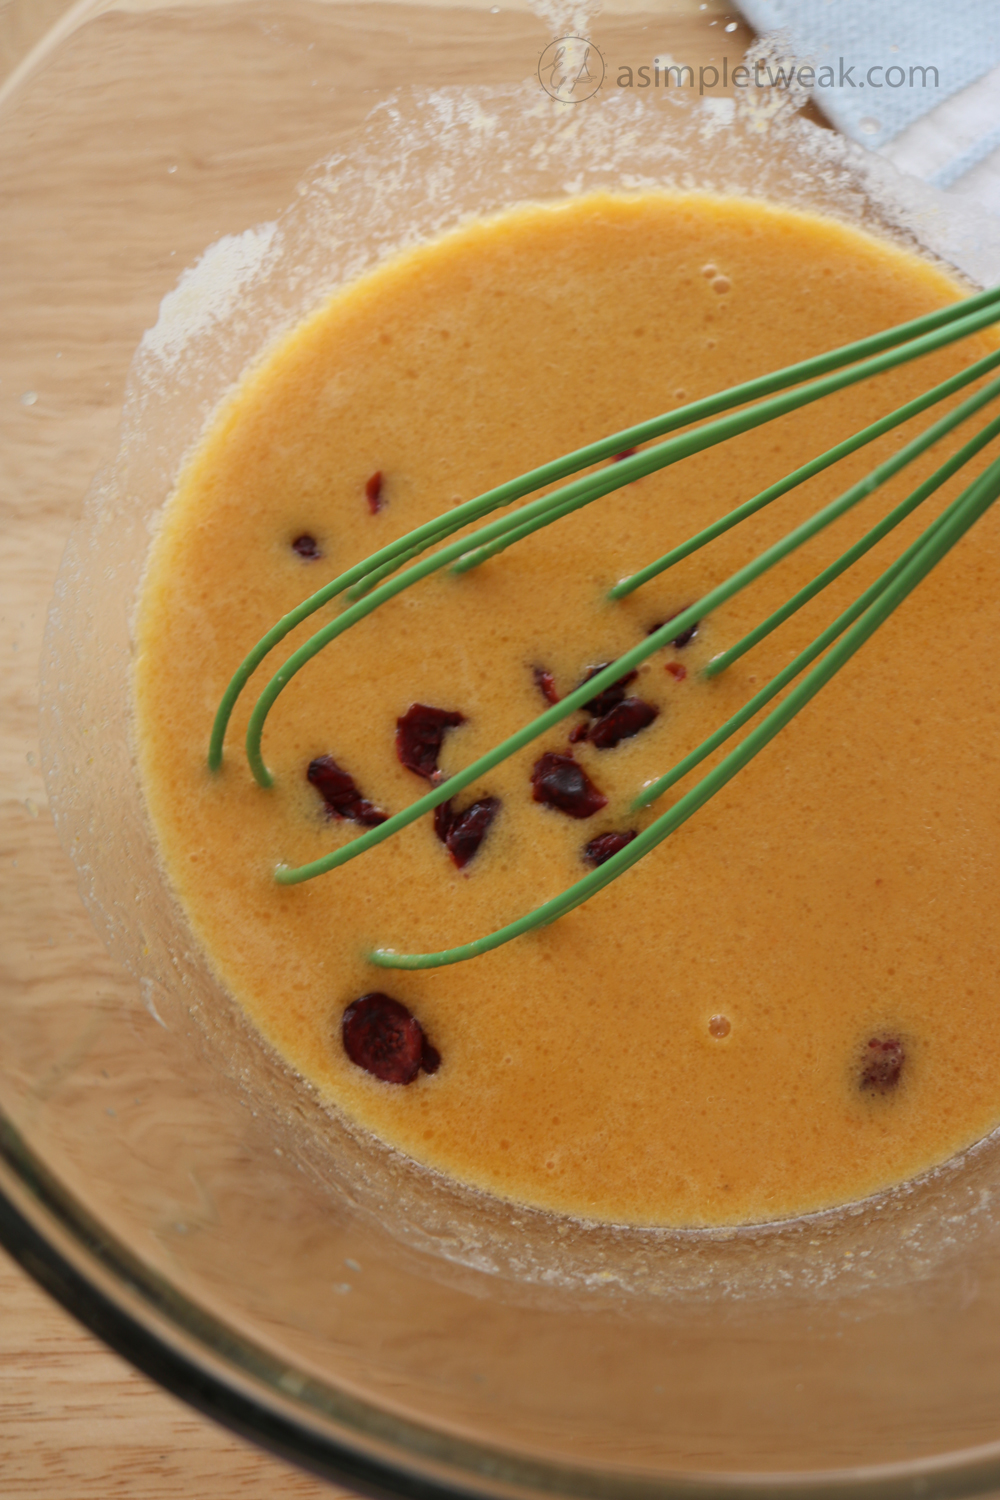 Add the pumpkin puree, an egg, milk, unsalted butter, and vanilla extract in the yeast mixture—Wisk to combine.